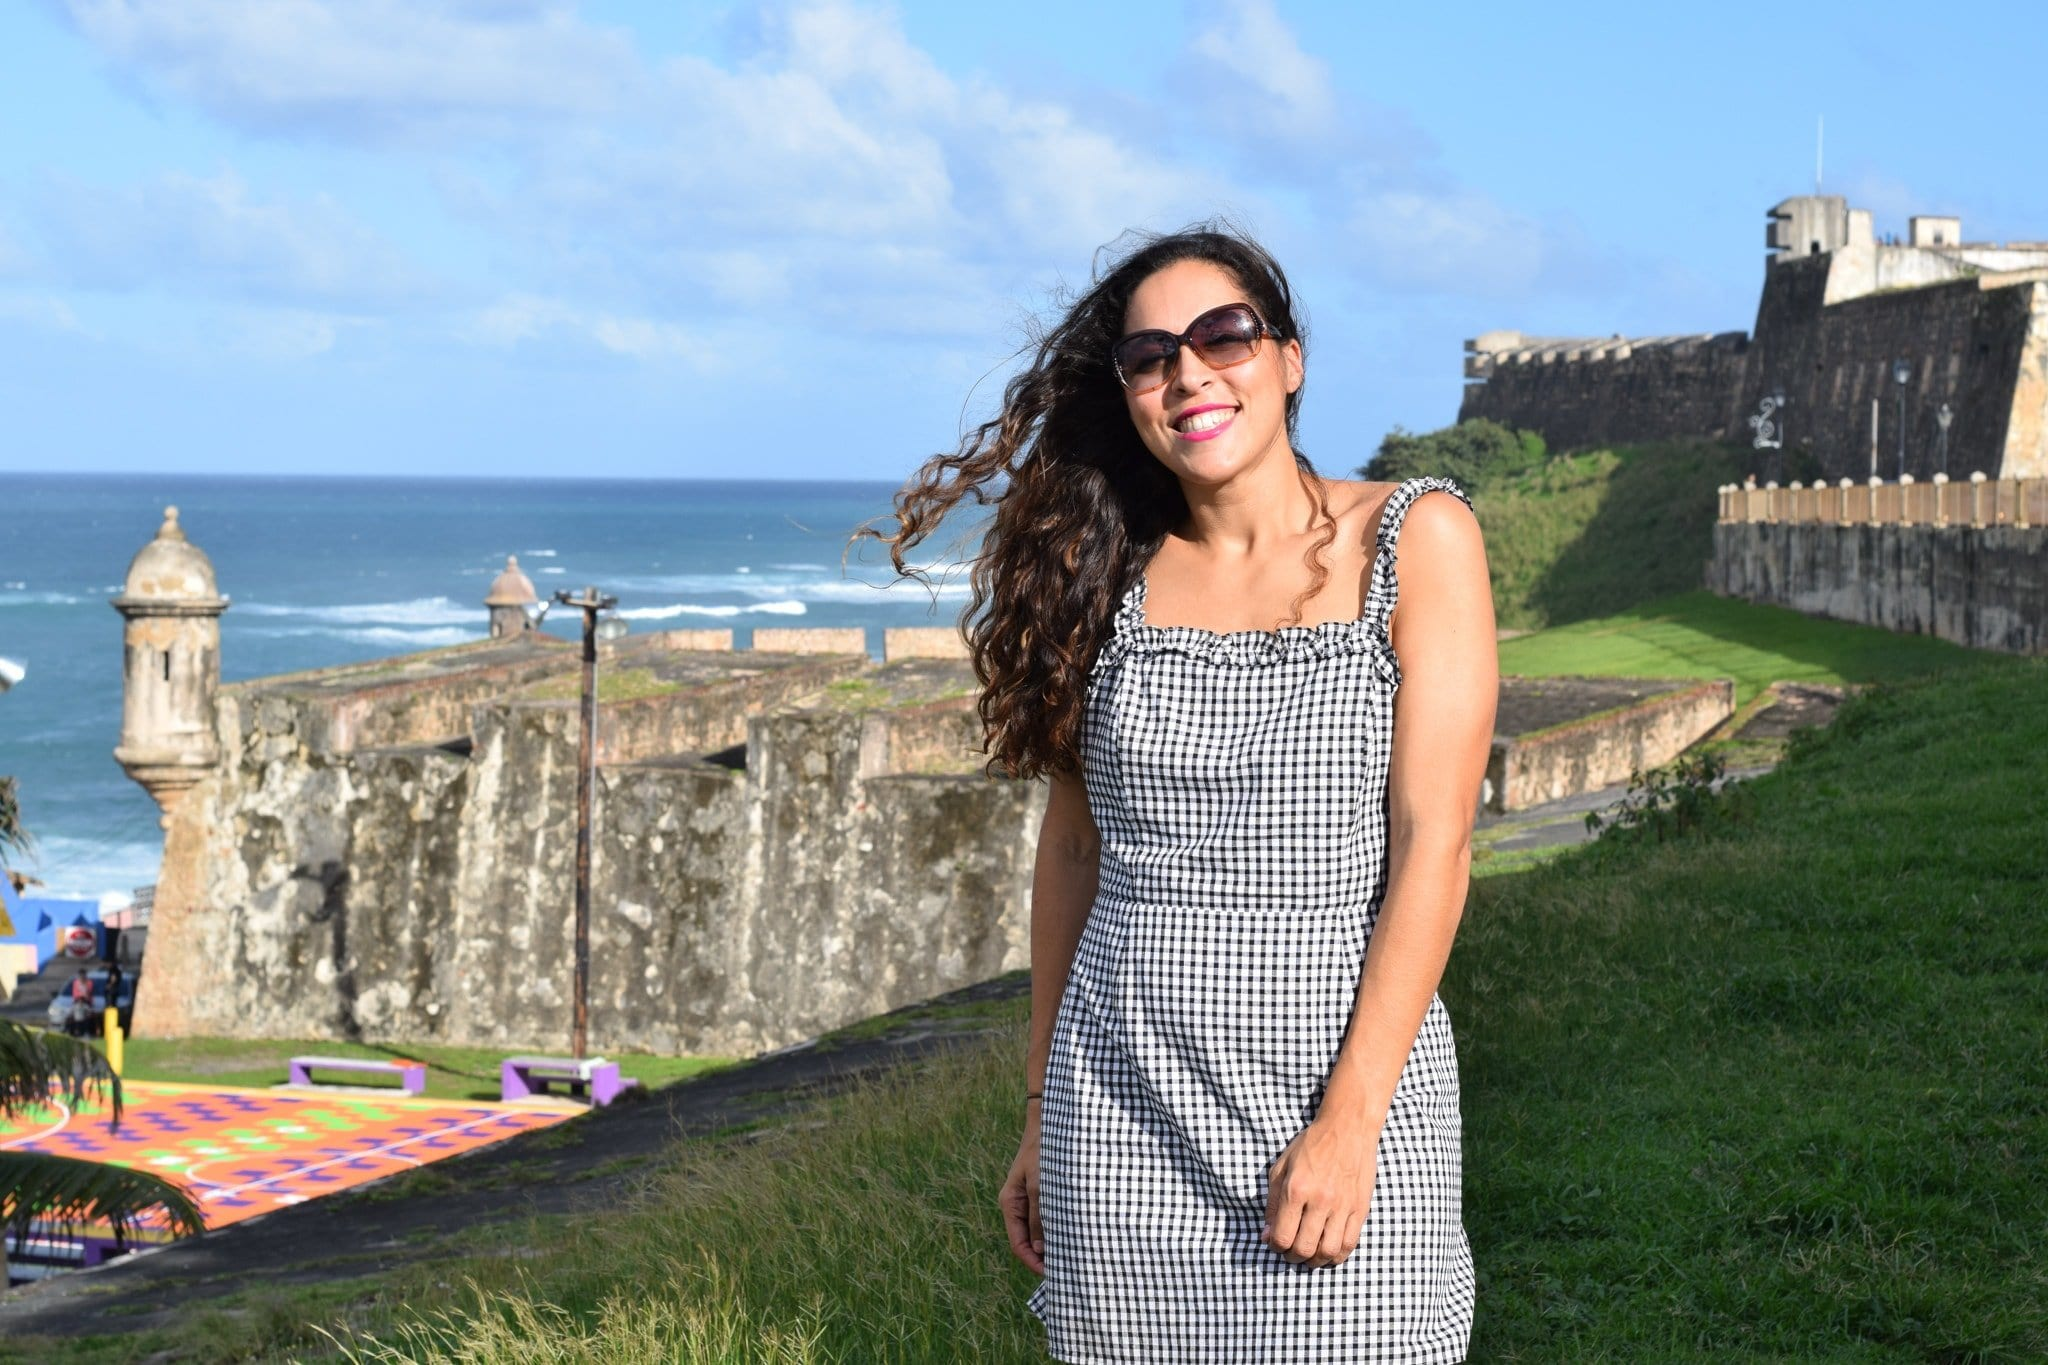 Sarah Fay Solo Travel blogger in old San Juan at Castillo San Cristóbal with the La Perla neighborhood basketball court in background.